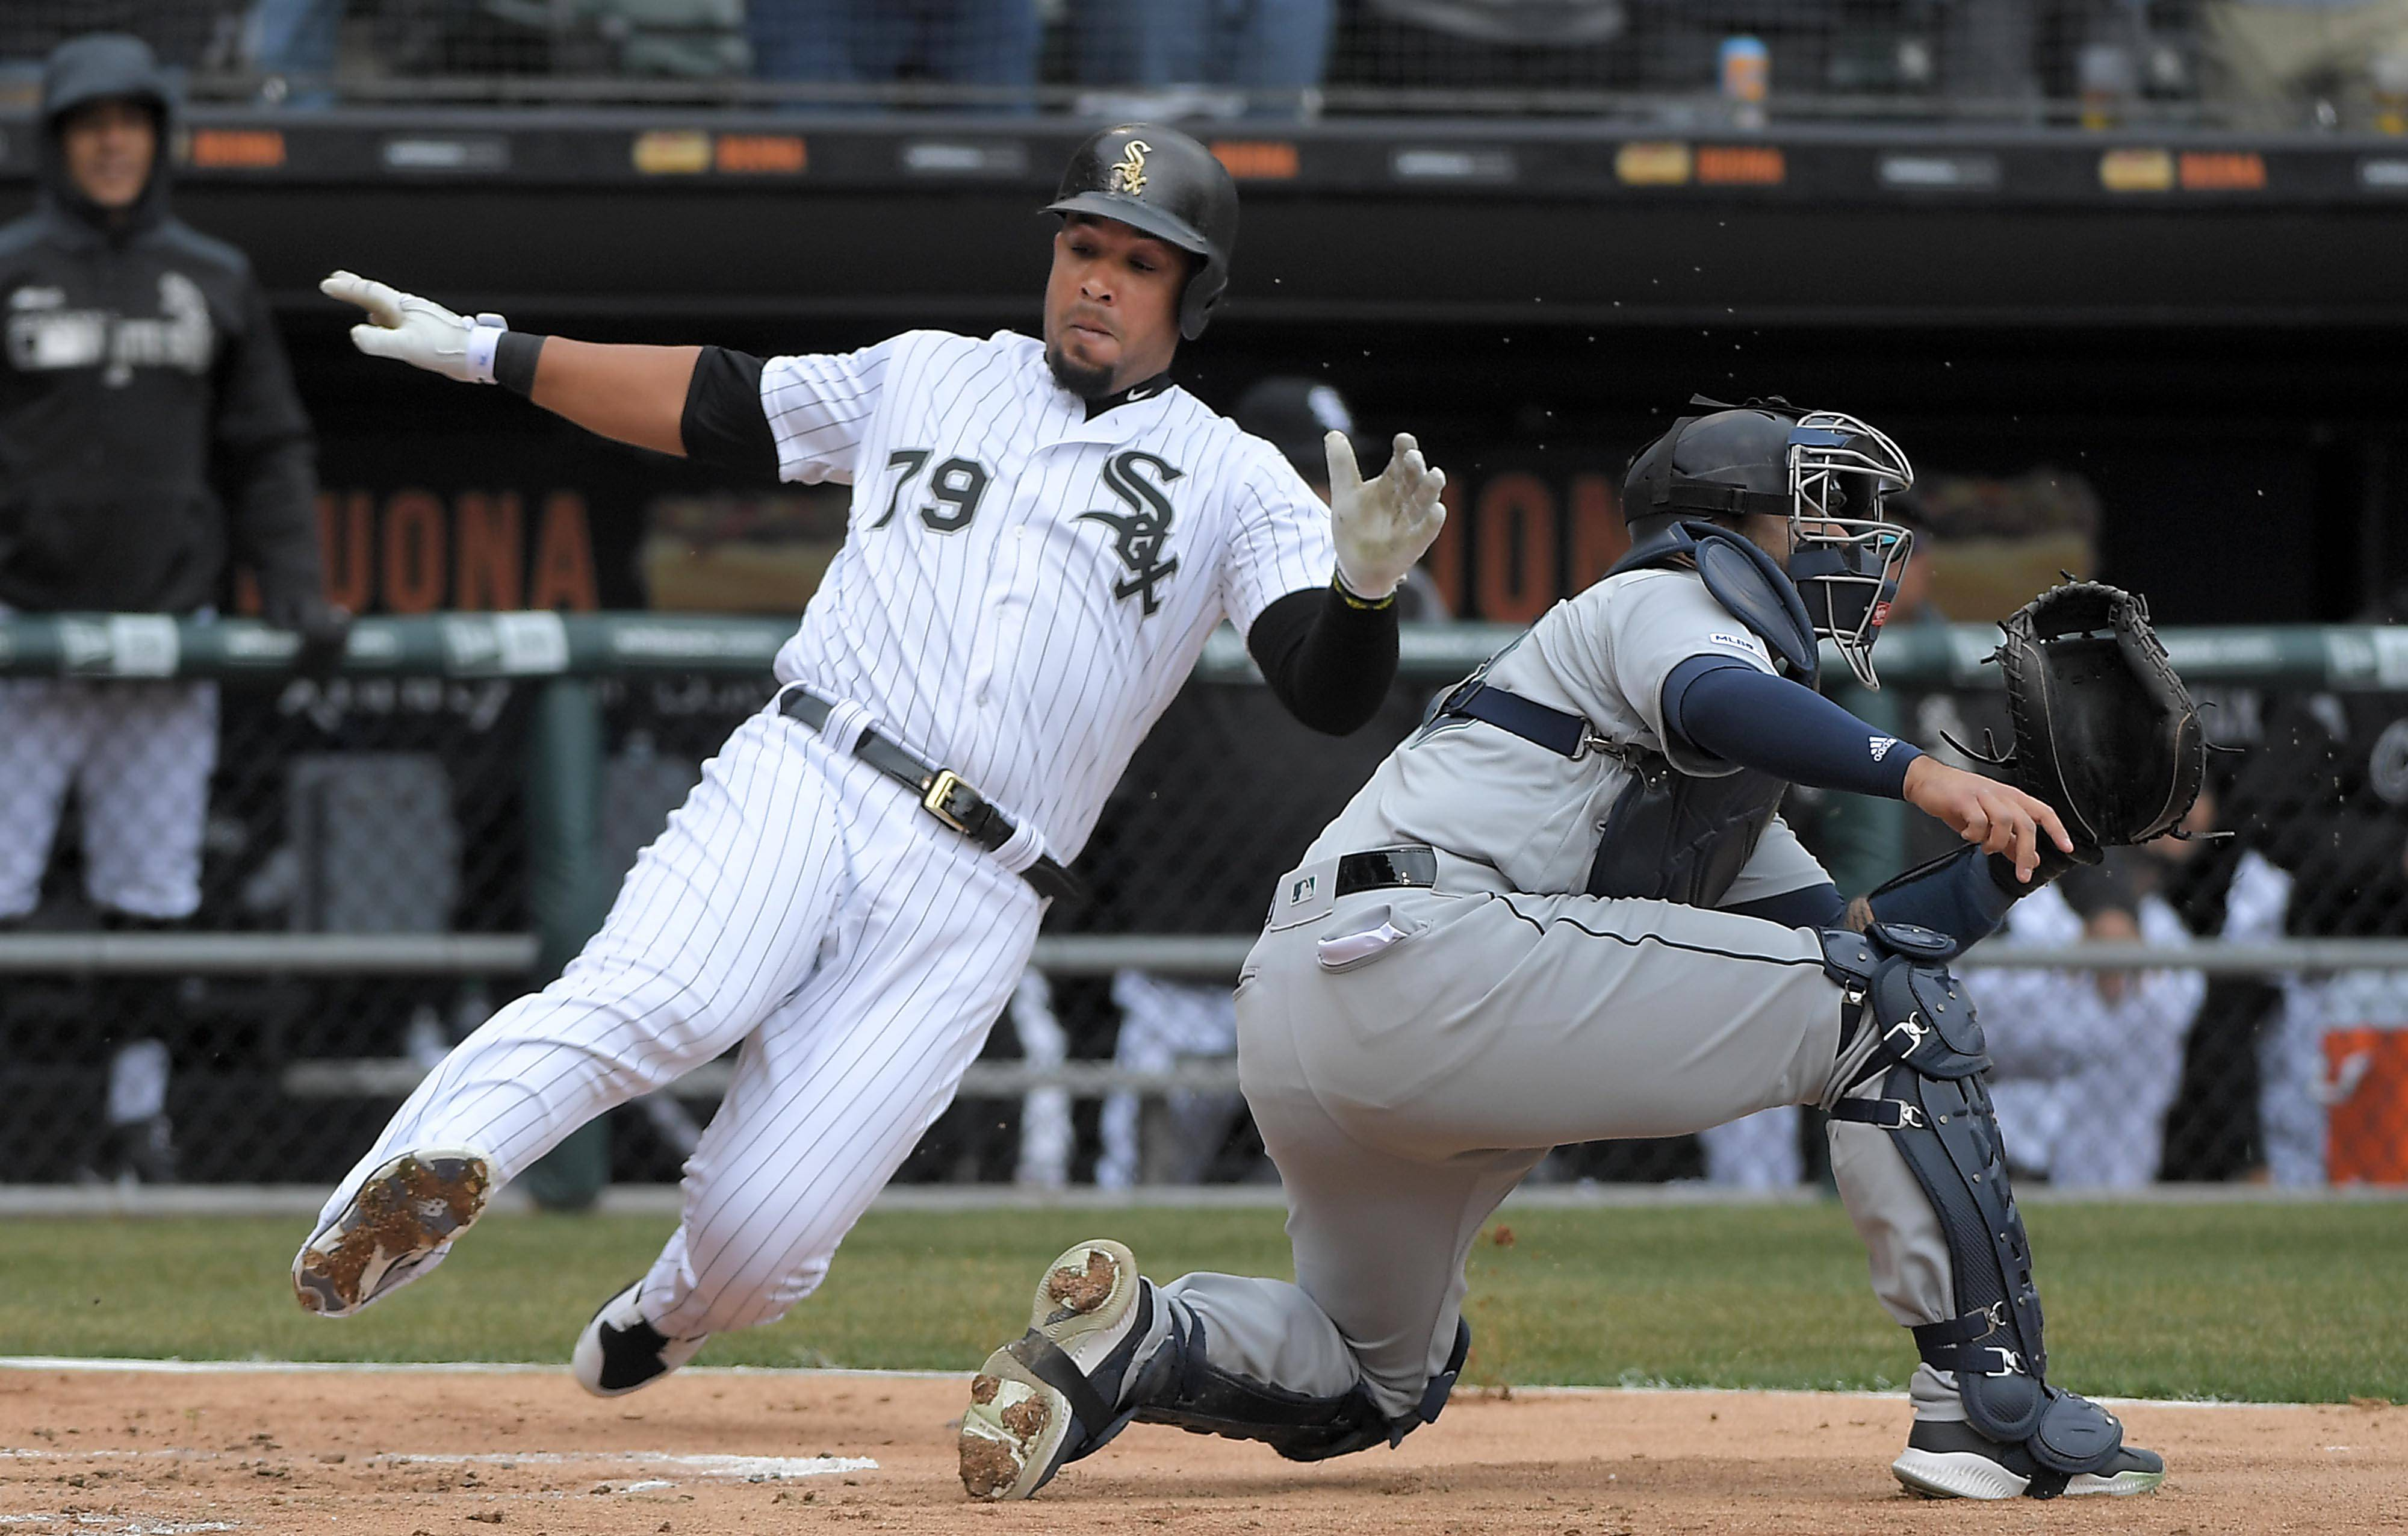 Chicago White Sox first baseman Jose Abreu scores on a double by teammate Yoan Moncada in the first inning at the home opener to the 2019 MLB season at Guaranteed Rate Field in Chicago Friday.